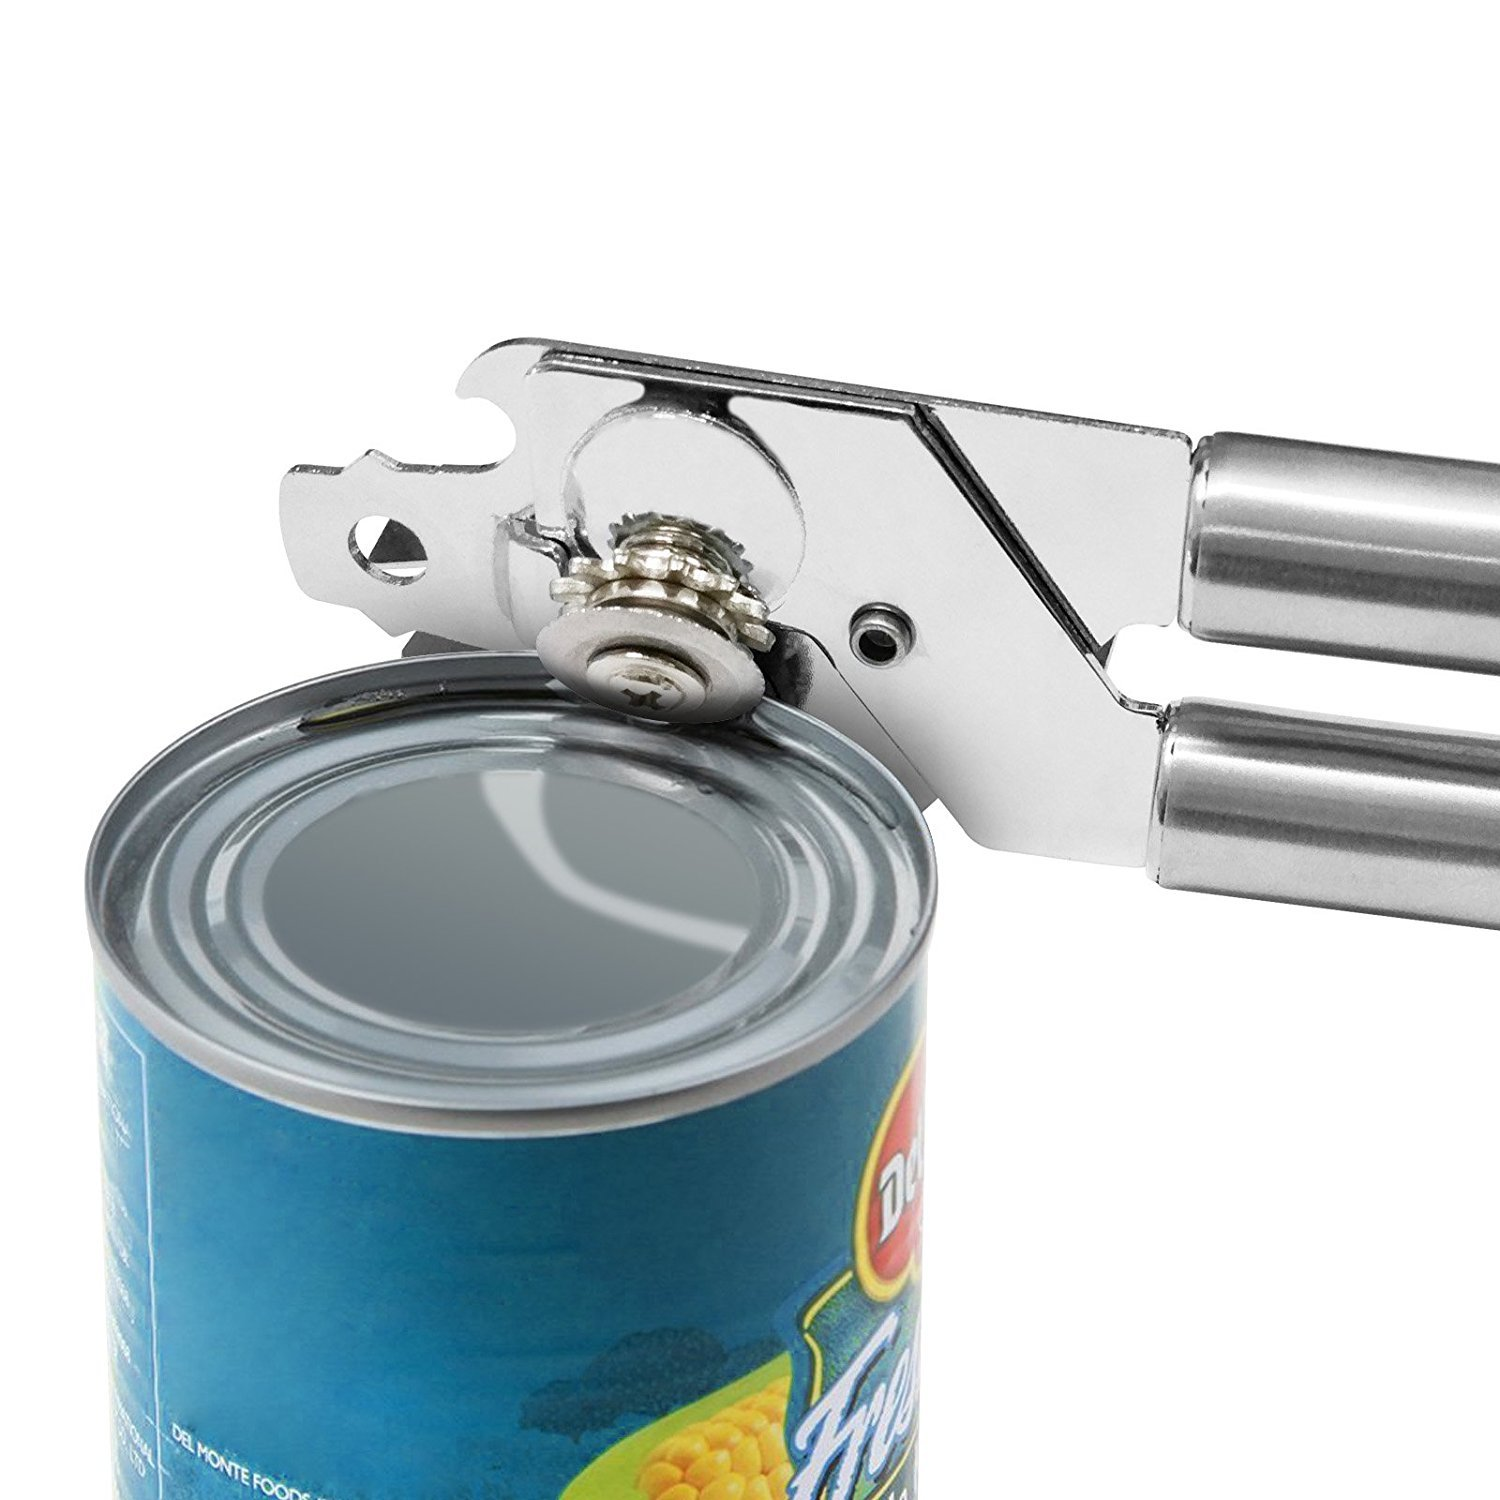 Becko 3-In-1 Professional Stainless Steel Manual Can Tin Opener / Jar Opener / Built-in Bottle Cap Tap Lifter with Ergononic Design Handle by Becko COMINHKPR133714